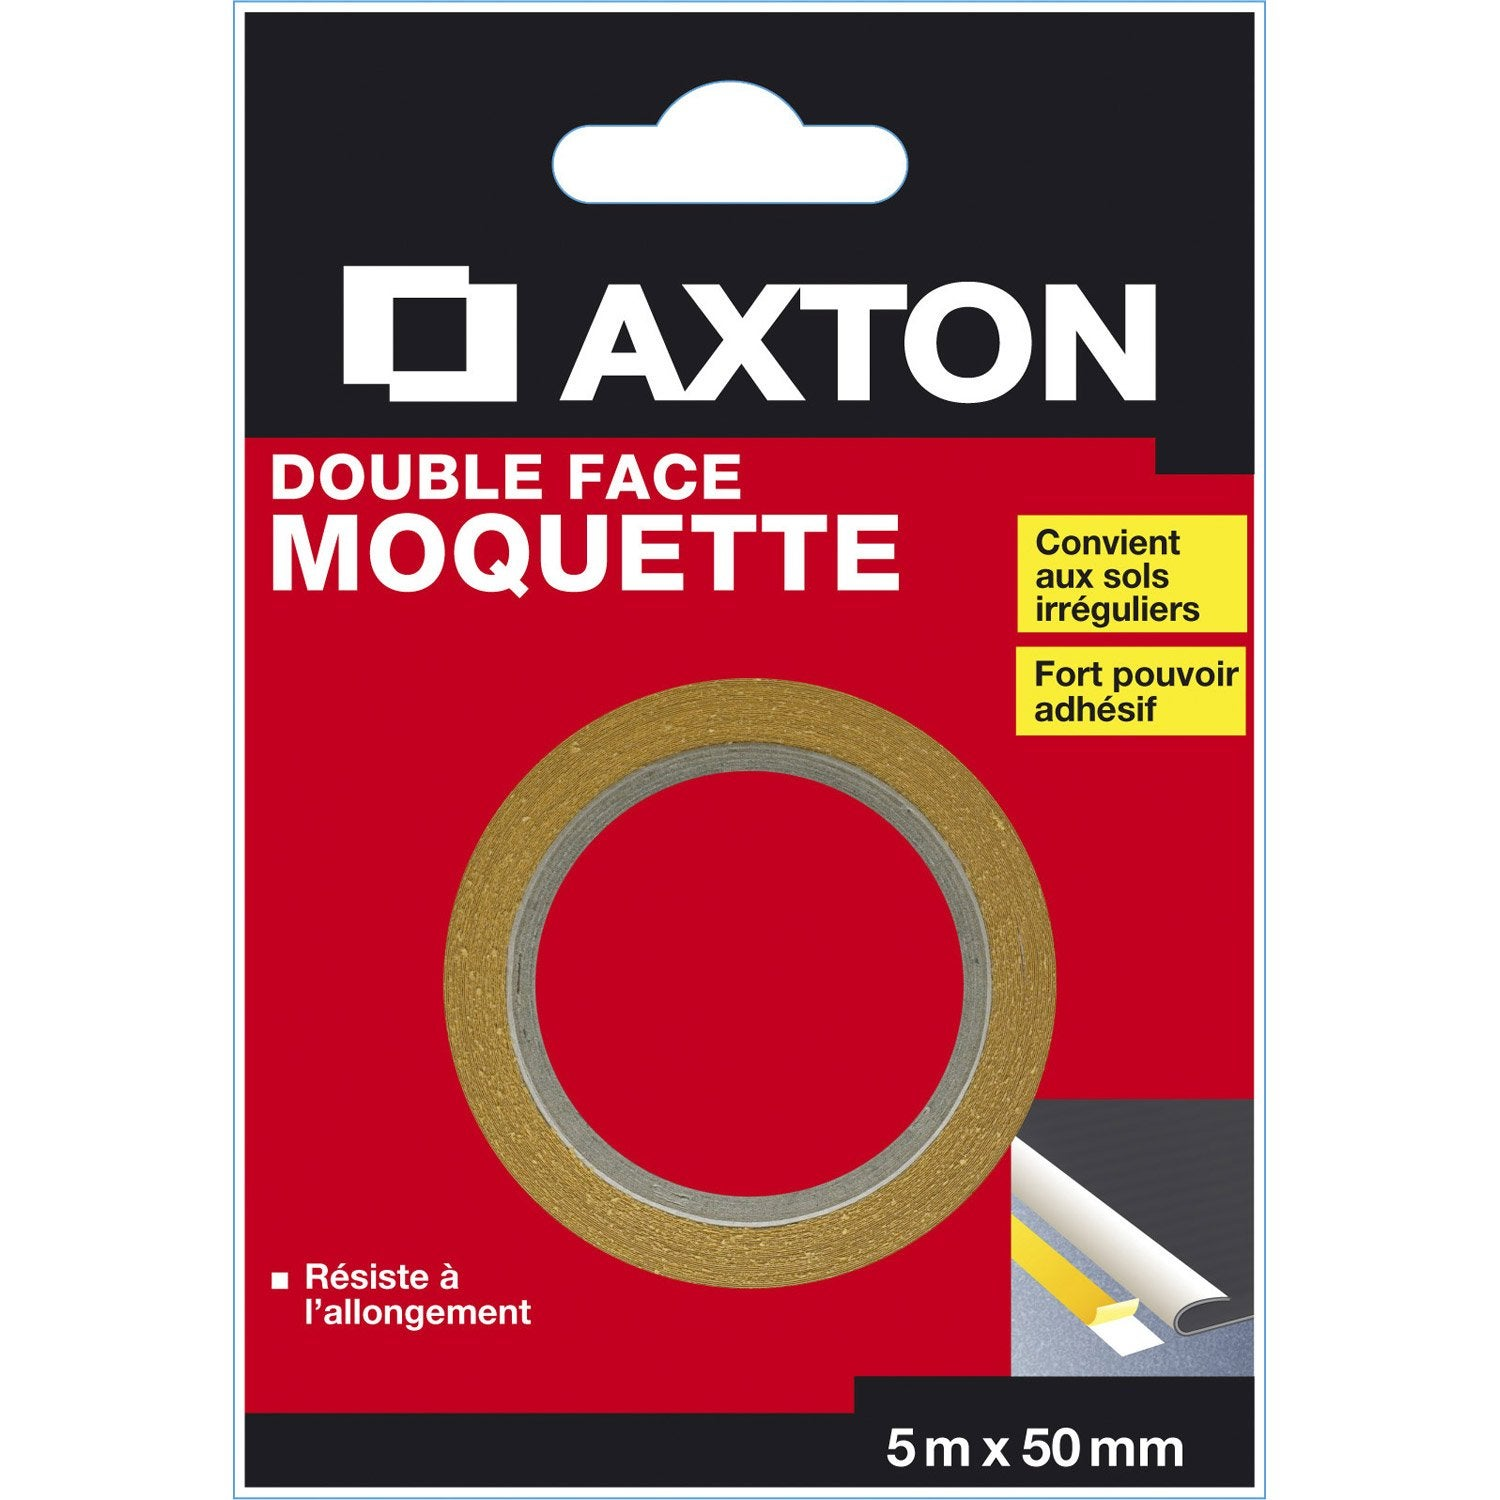 Double face moquette axton 50 mm x 5 - Double face leroy merlin ...